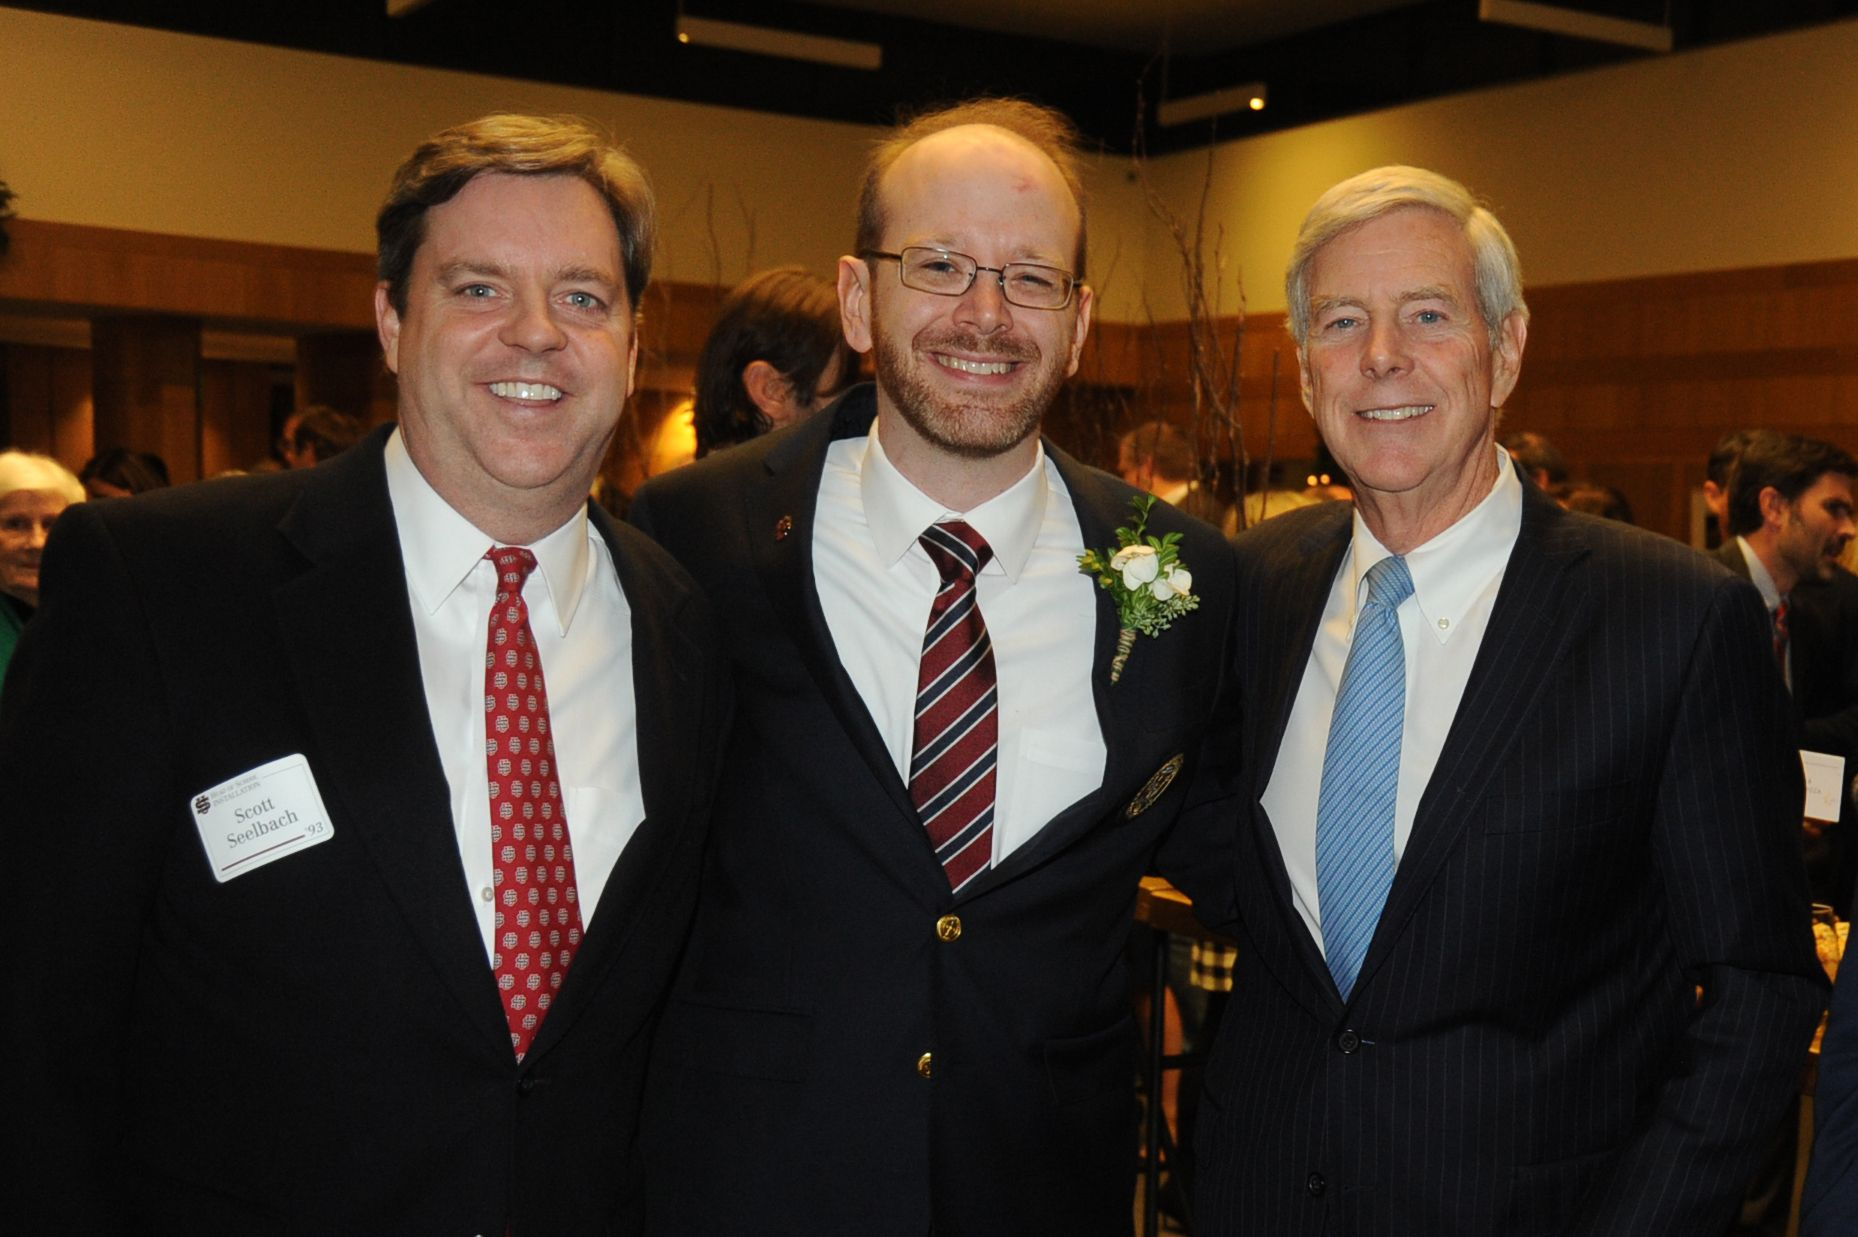 Former President of the US Alumni Association Scott Seelbach '93, Head of School Patrick Gallagher, and Life Trustee Bill Seelbach '66